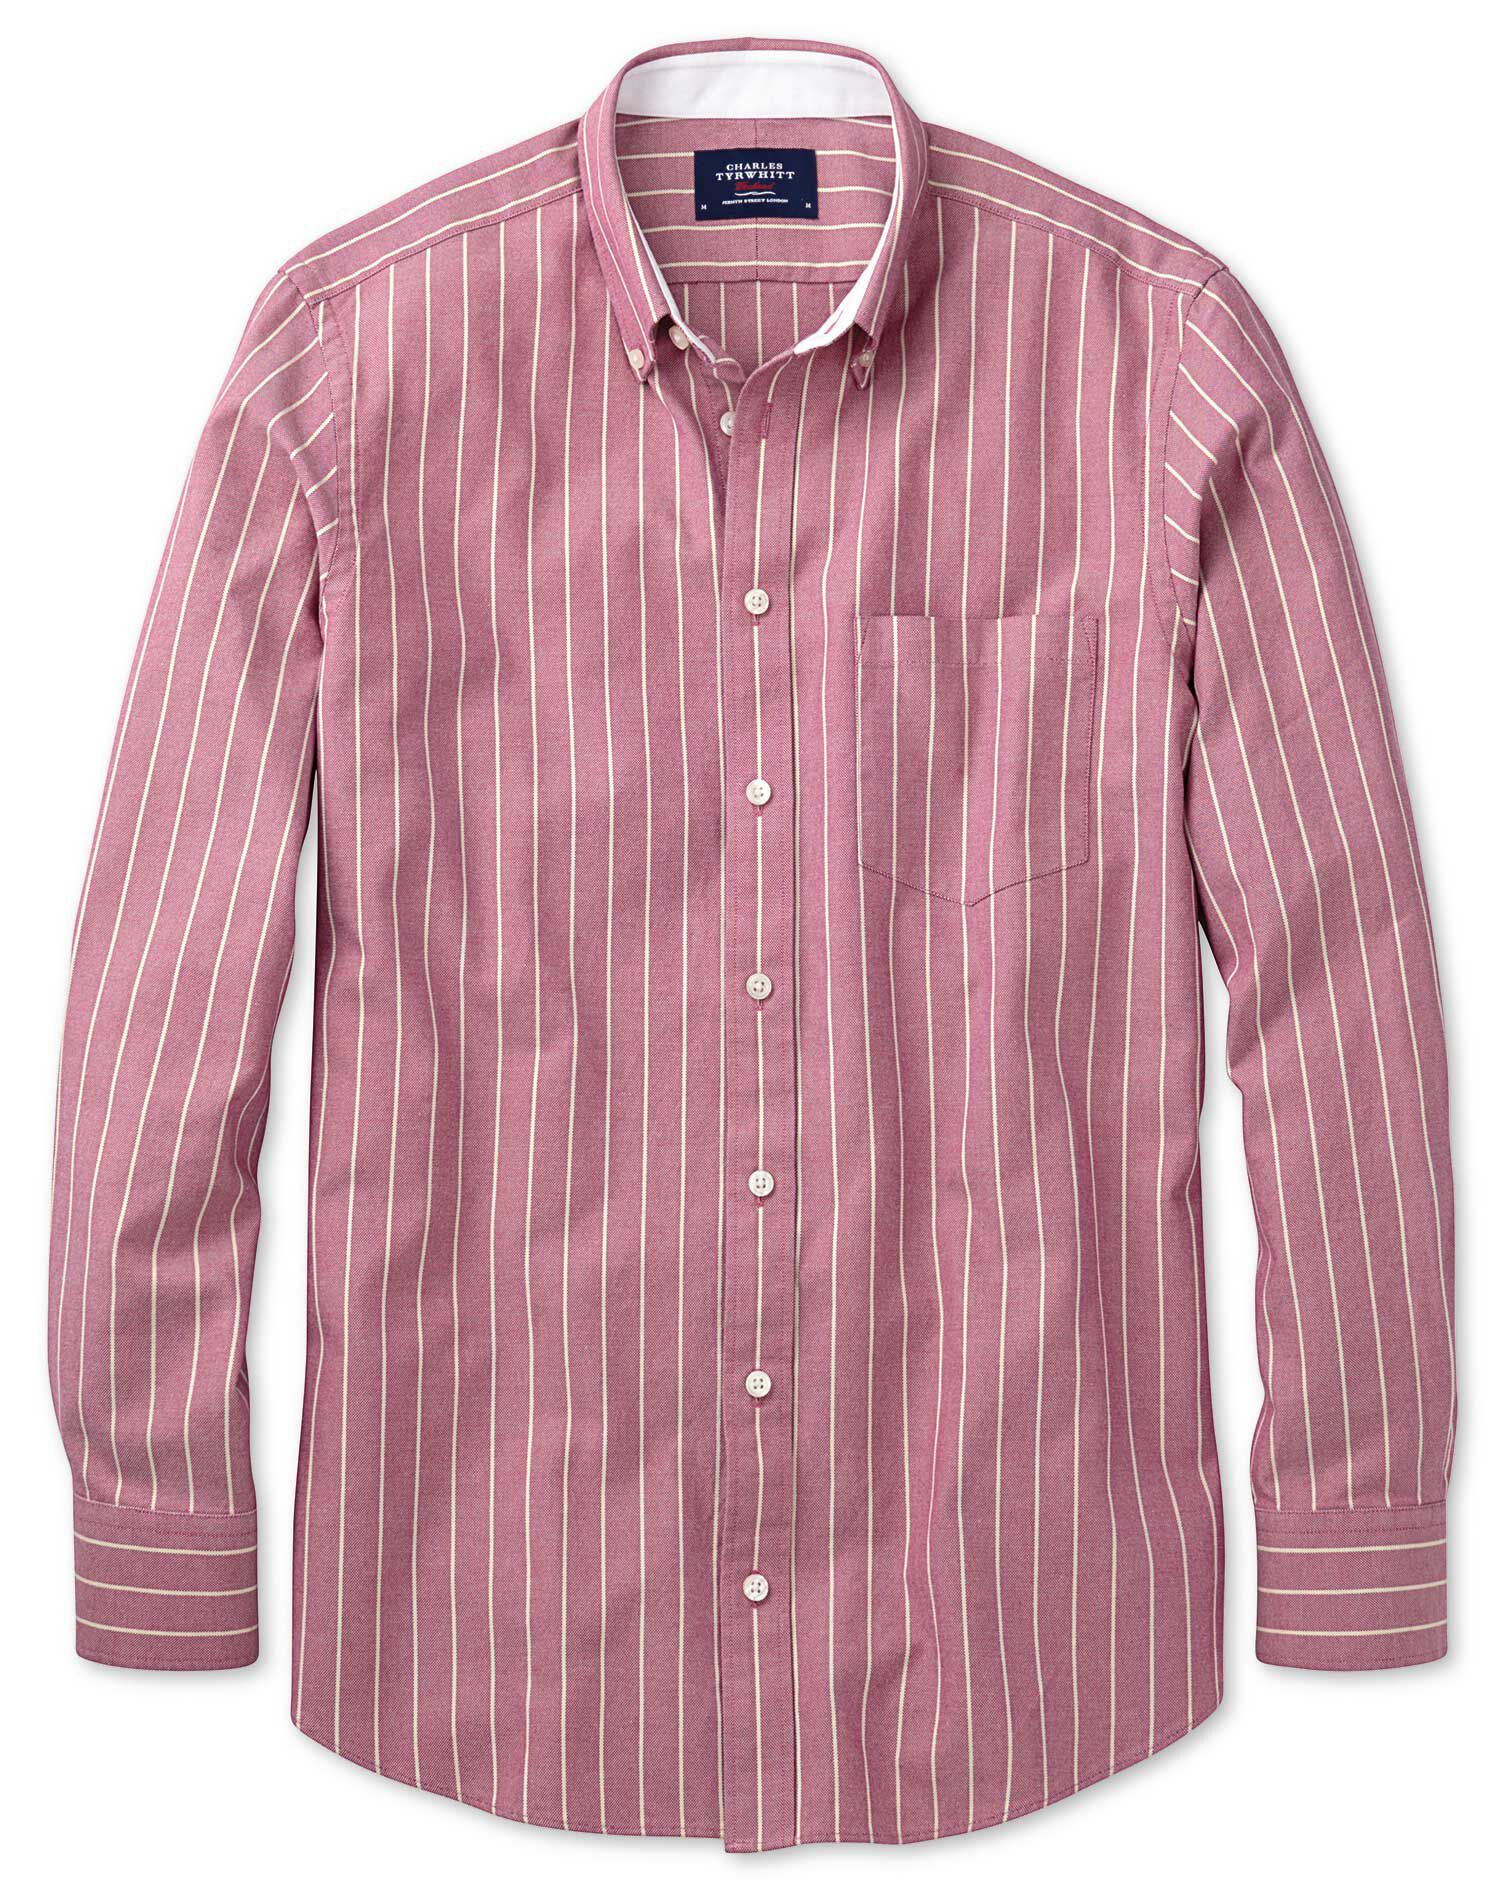 Extra Slim Fit Magenta Stripe Washed Oxford Cotton Shirt Single Cuff Size Small by Charles Tyrwhitt